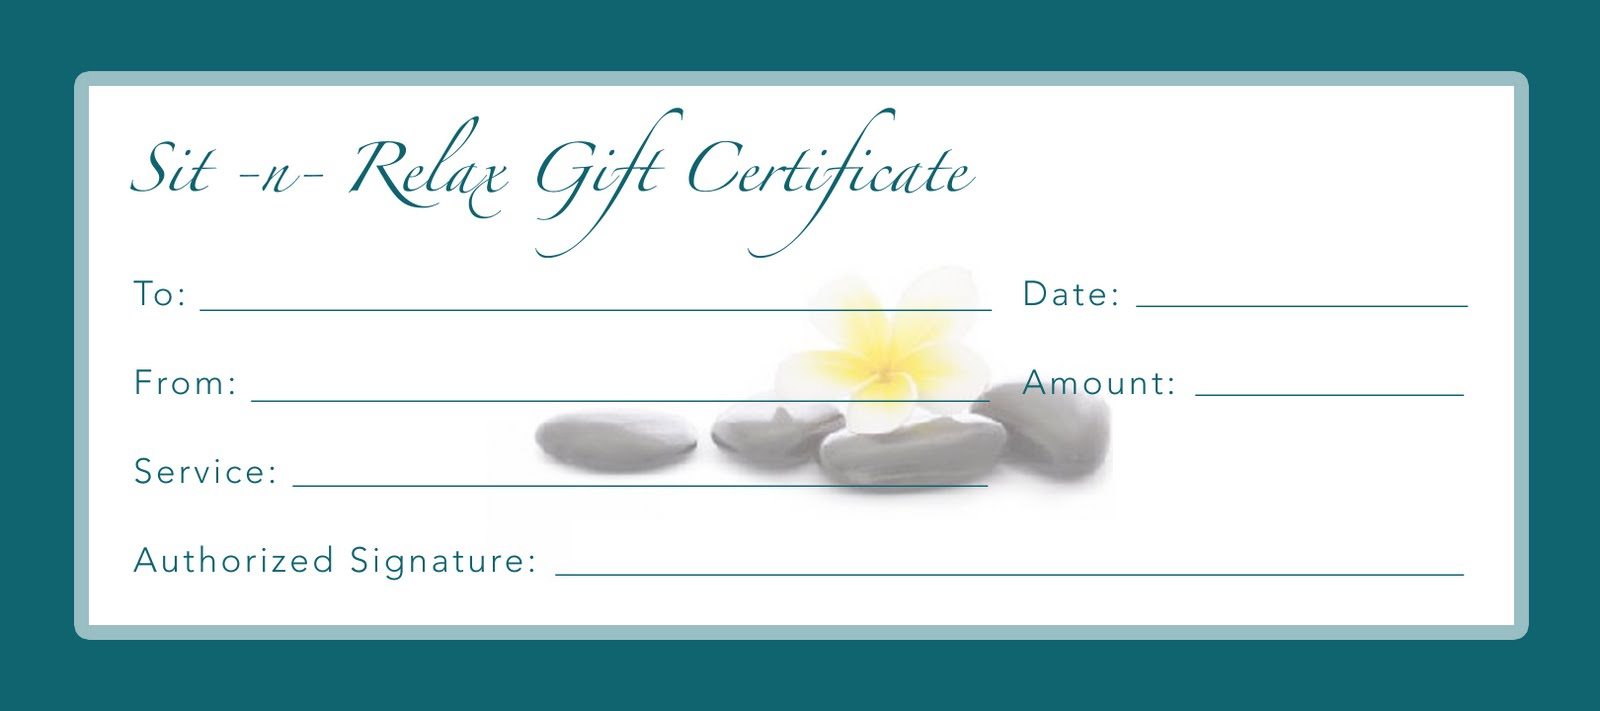 Printable Gift Certificate Template - D-Templates - Free Printable Gift Certificate Templates For Massage